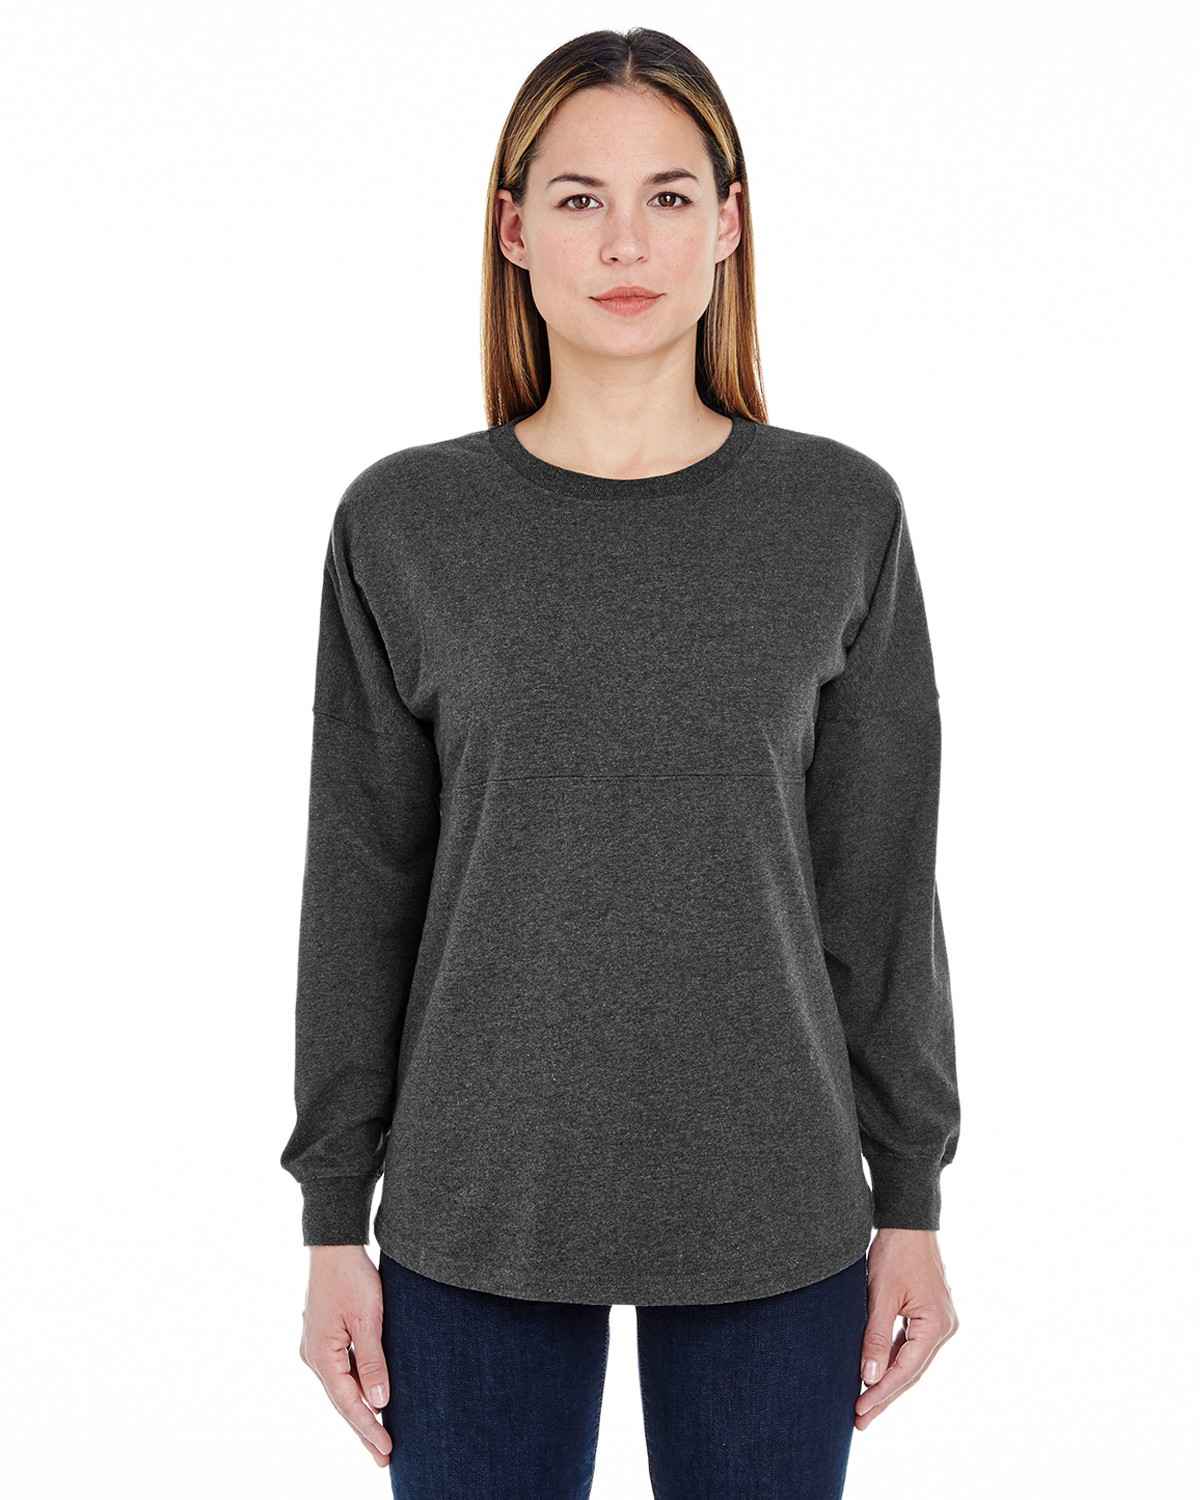 JA8229 J America CHARCOAL HEATHER